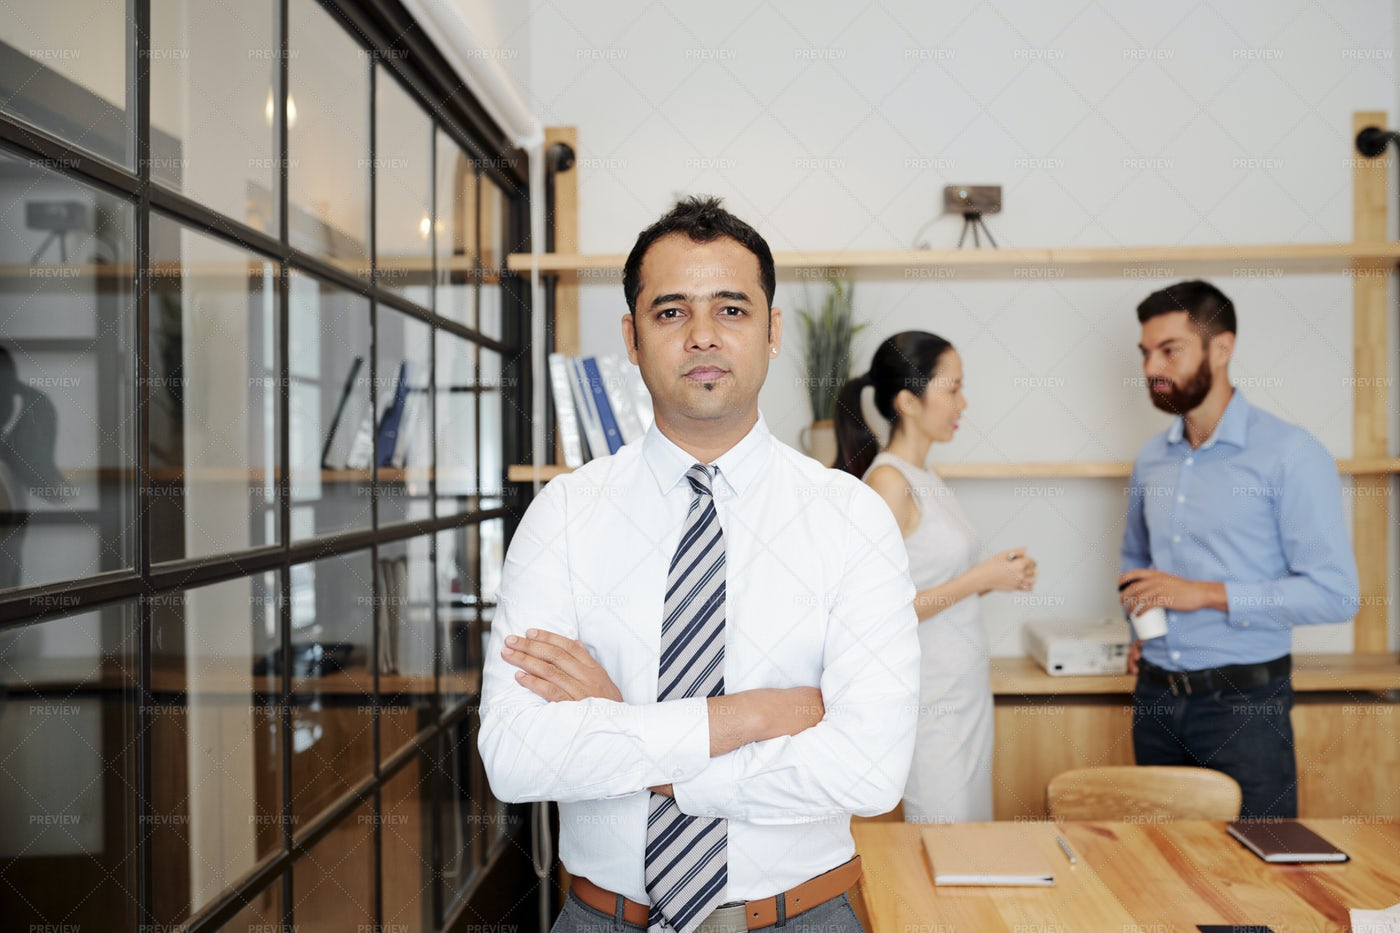 Indian Male Leader Standing At Office: Stock Photos